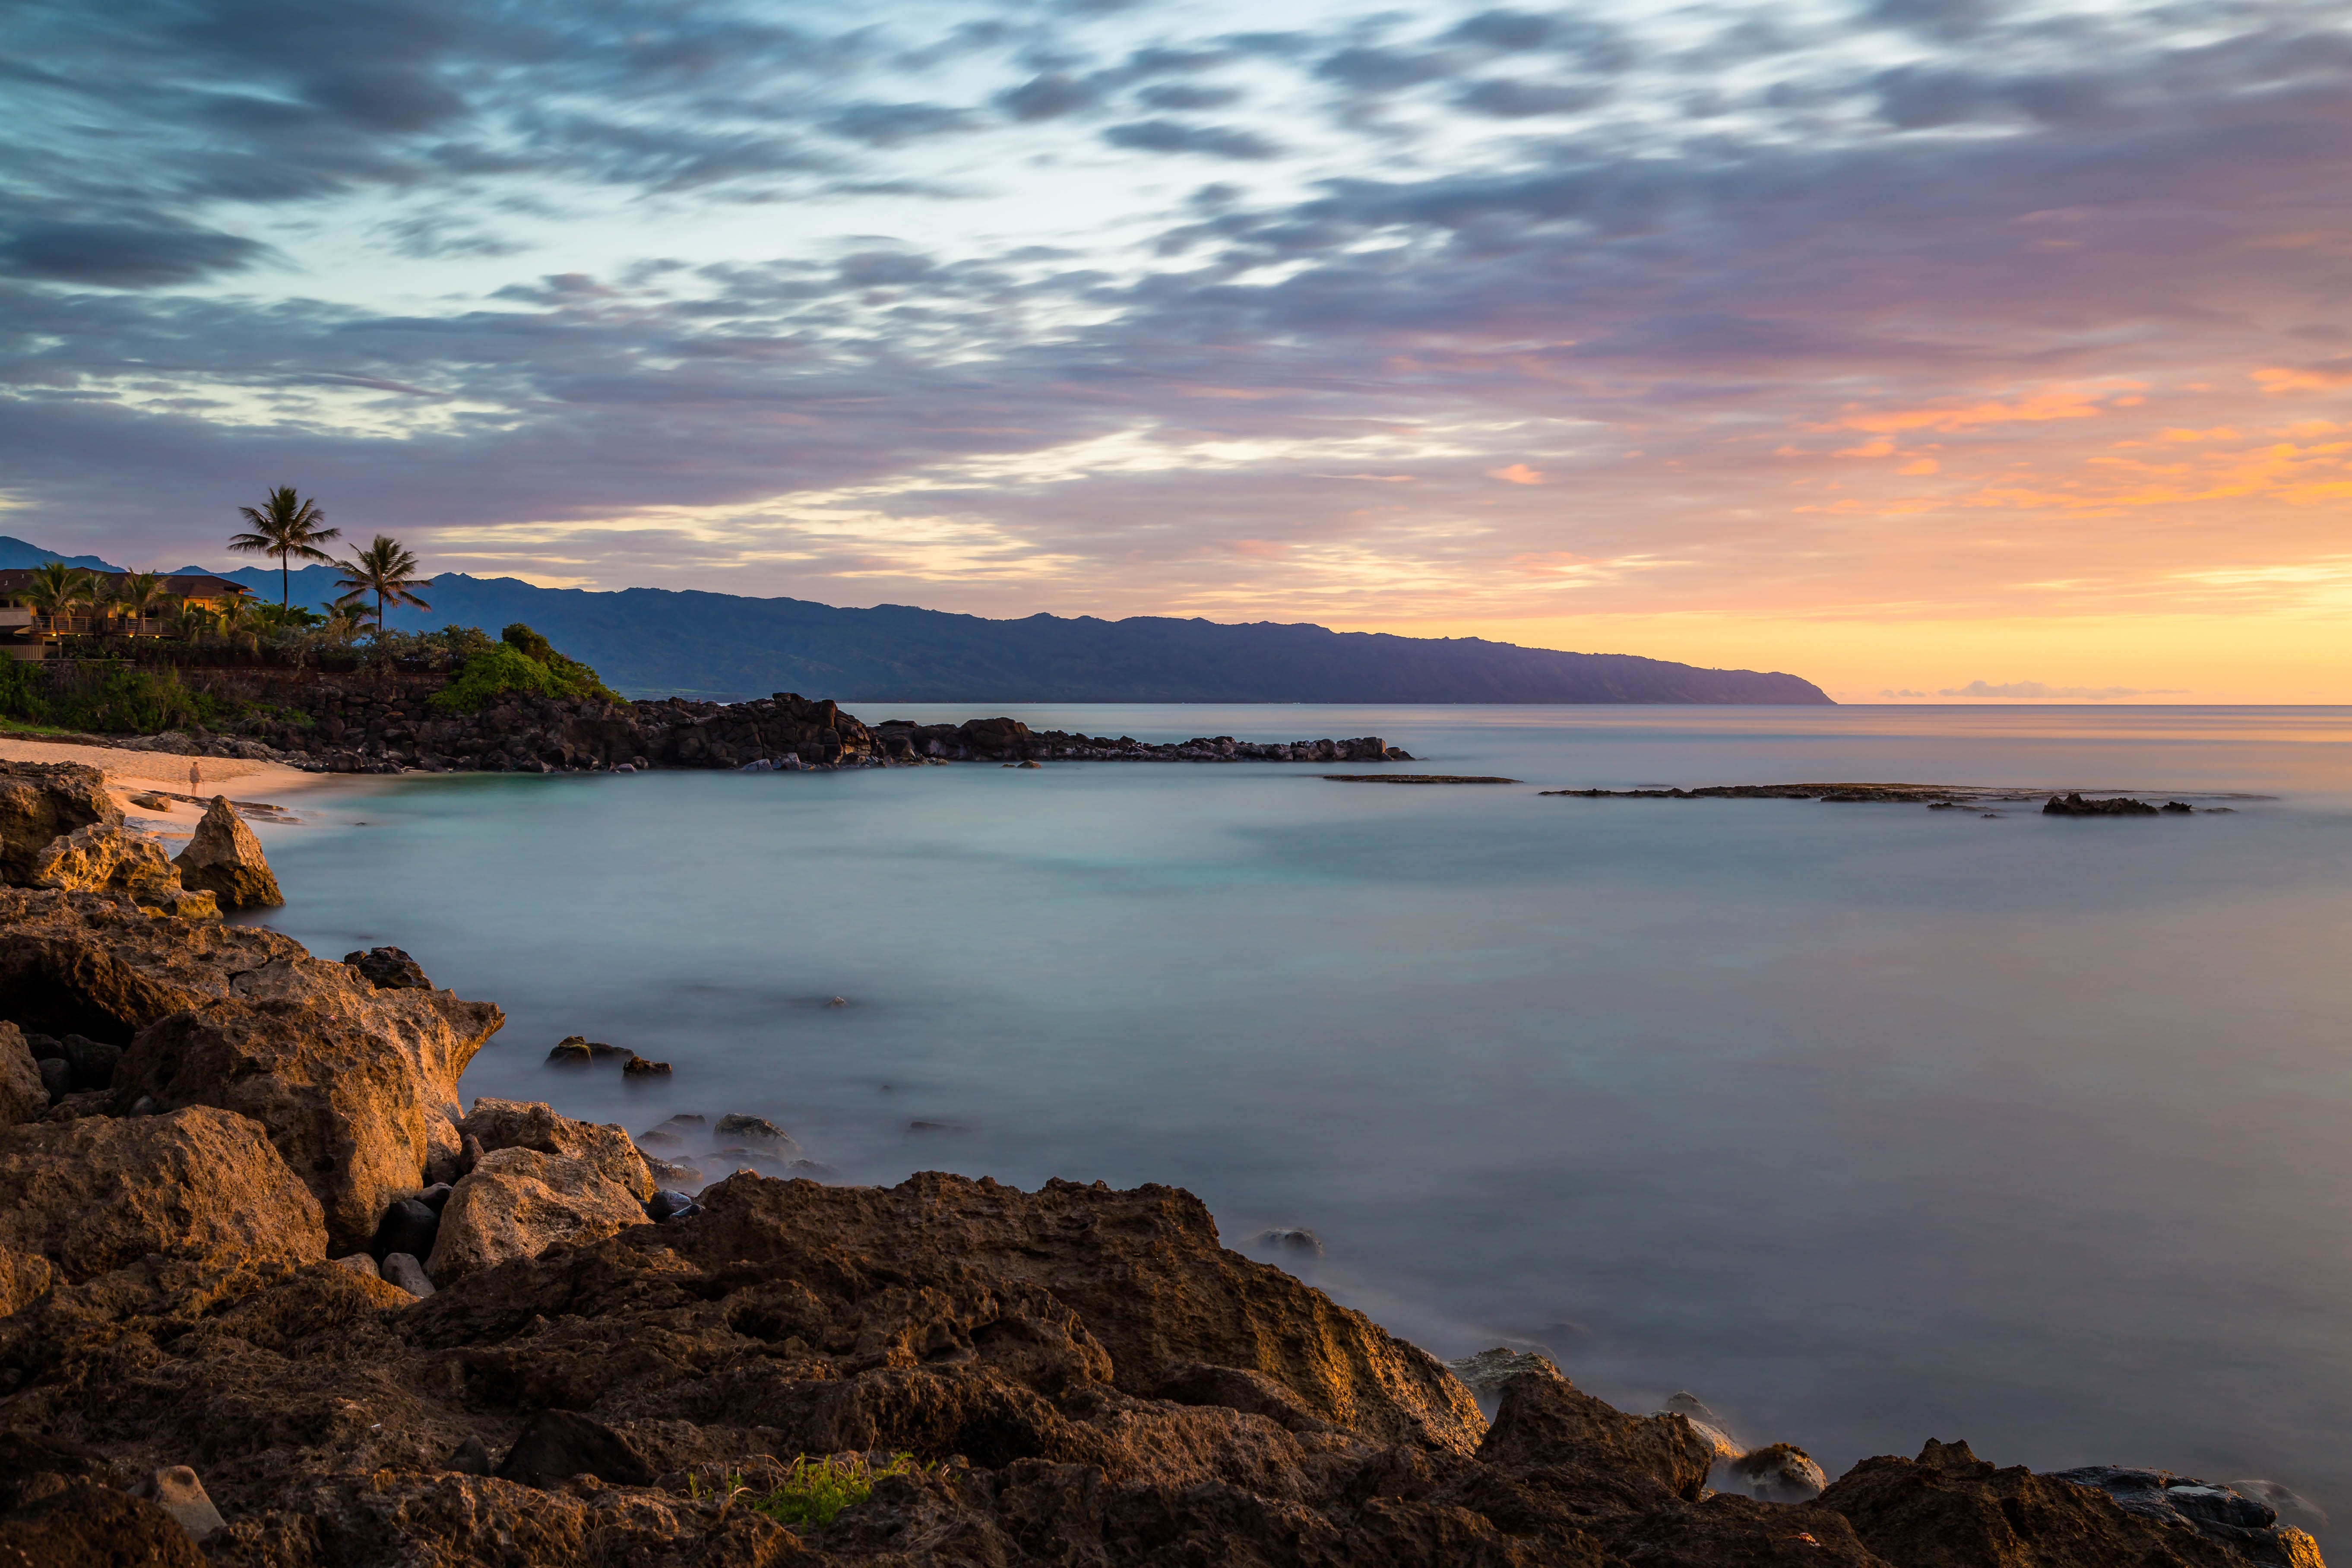 Rocky shoreline with palm trees by the calm ocean at Three Tables Beach during sunset